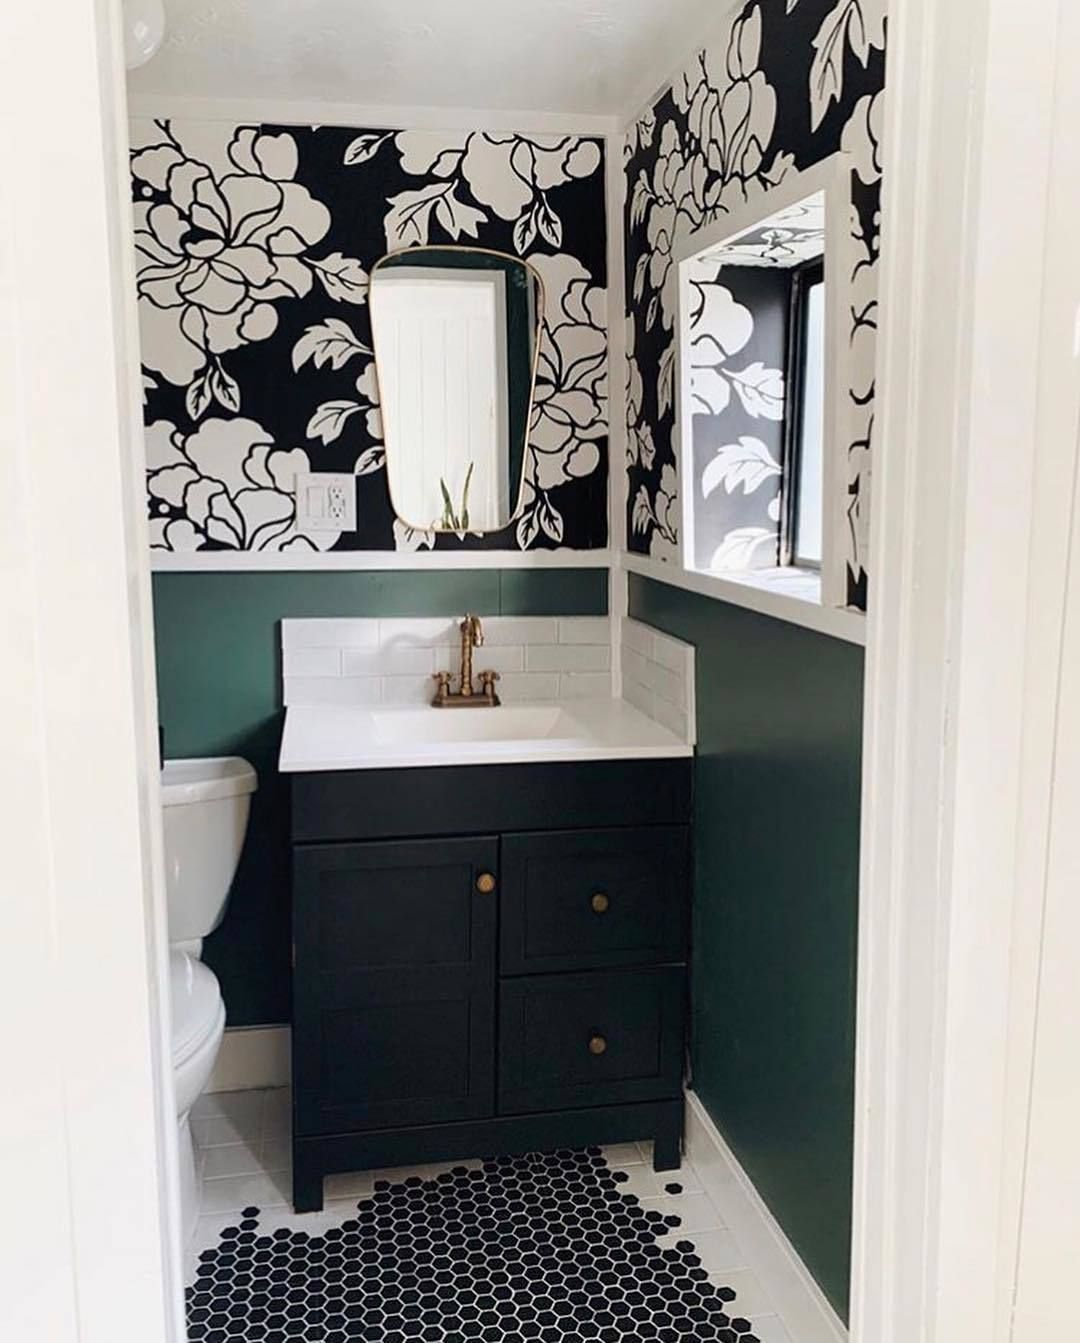 The Best Bathroom Paint Colors And How To Use Them Best Bathroom Paint Colors Bathroom Paint Colors Painting Bathroom